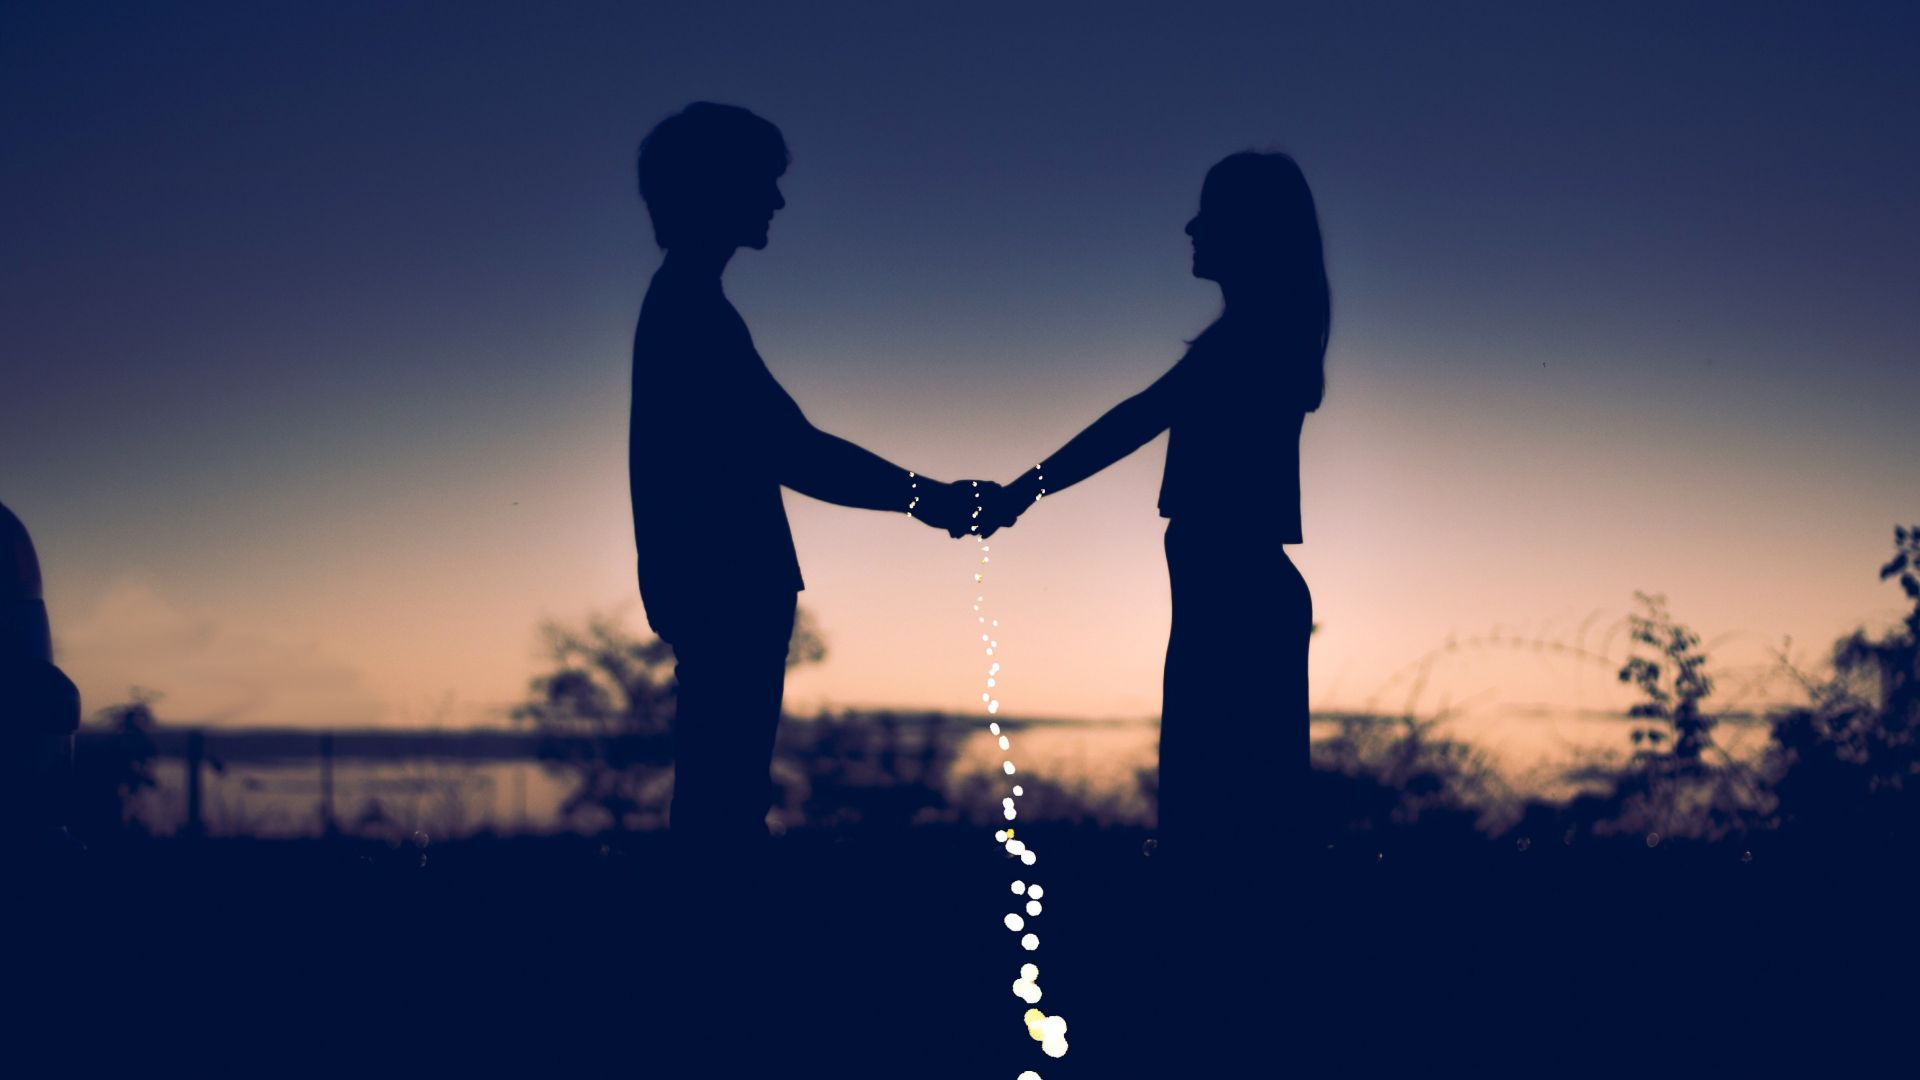 Stock Images Love Image Couple 4k Stock Images 15629